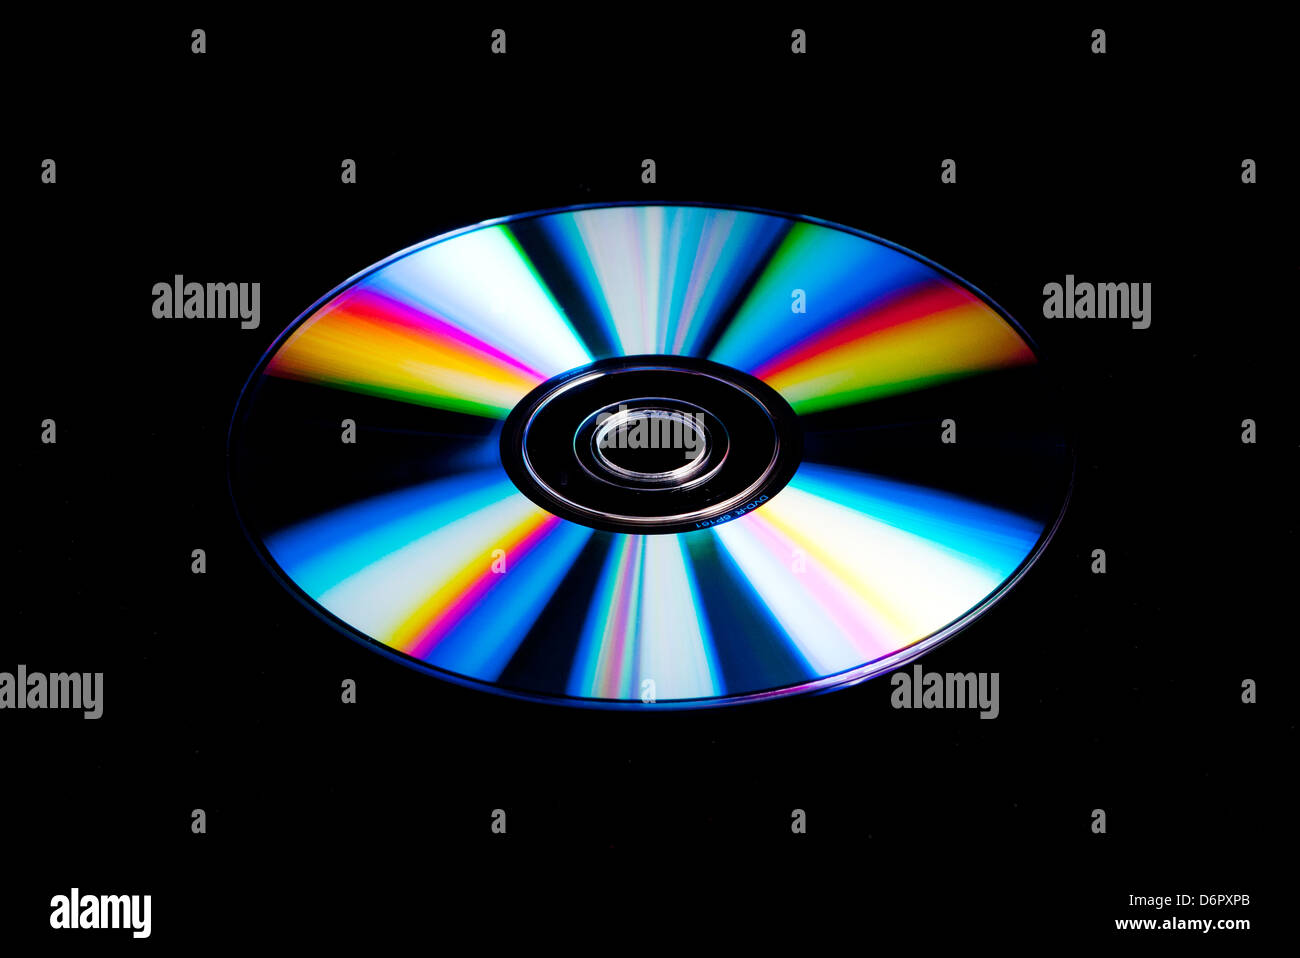 DVD, CD disk with rainbow colours - Stock Image